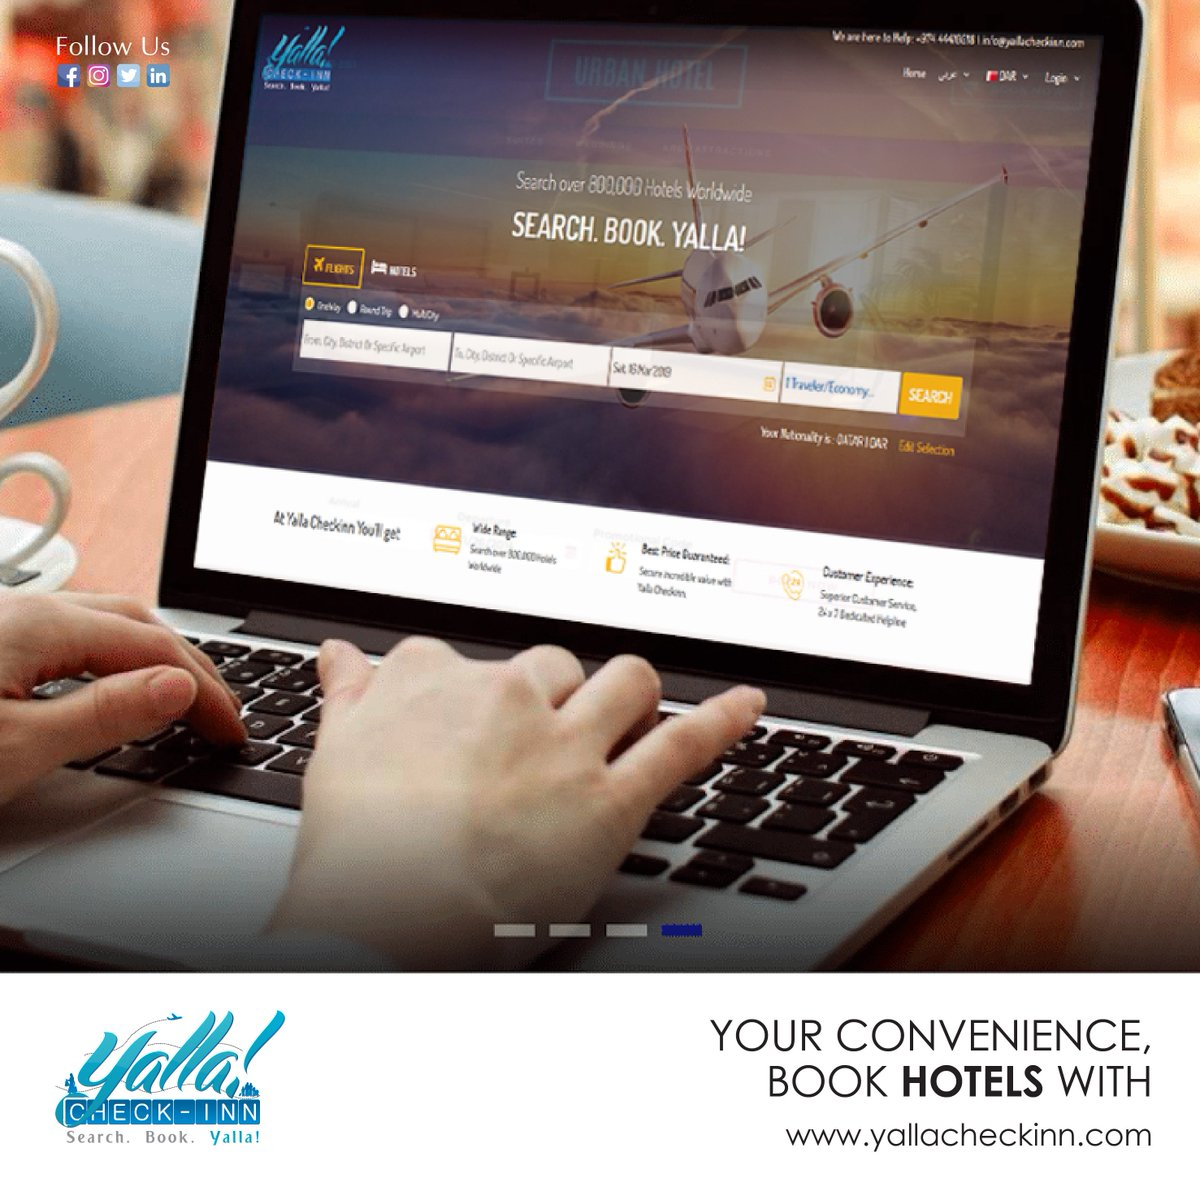 Your #Convenience... #Book #Hotels with https://t.co/baScaL4E94 https://t.co/b3k6bwpkYm